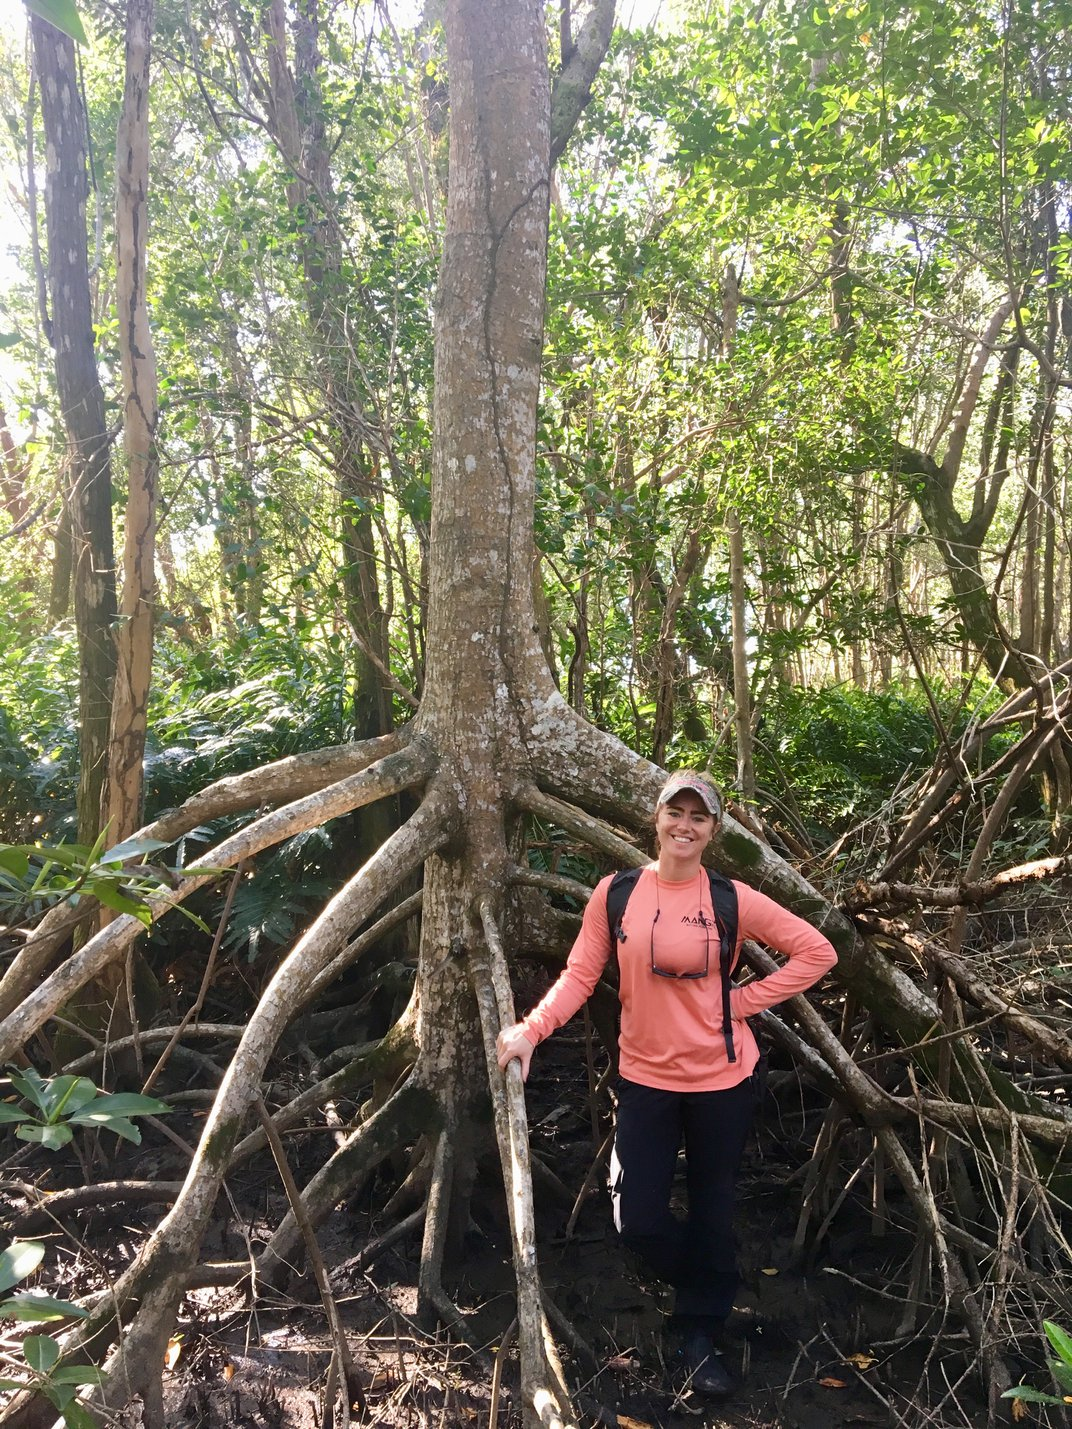 A person in front of a mangrove tree.